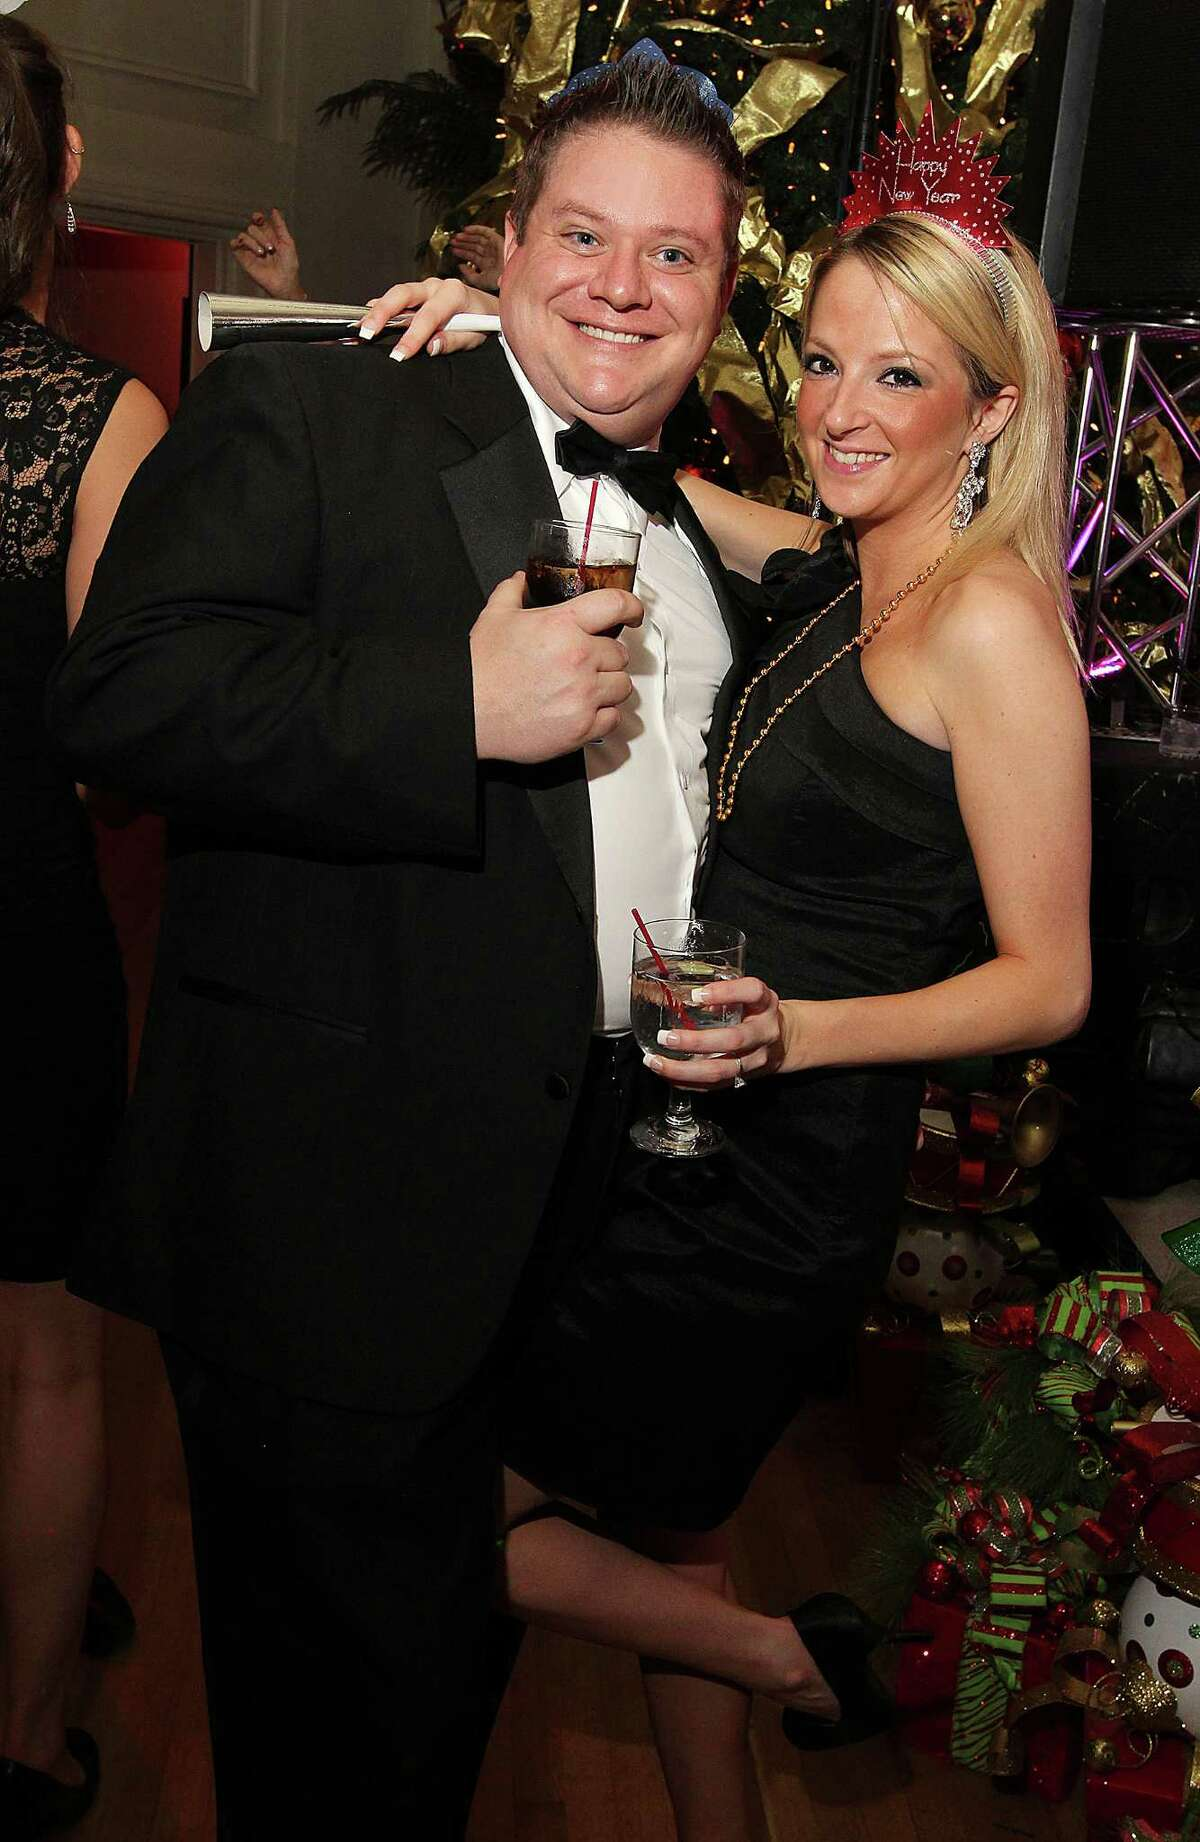 Troy, NY - December 31, 2012 - (Photo by Joe Putrock/Special to the Times Union) - Bill Anderson(left) and Amanda Traver(right) during the 8th Annual Last Night New Year?s Eve Gala to benefit St. Peter?s Hospital Foundation.